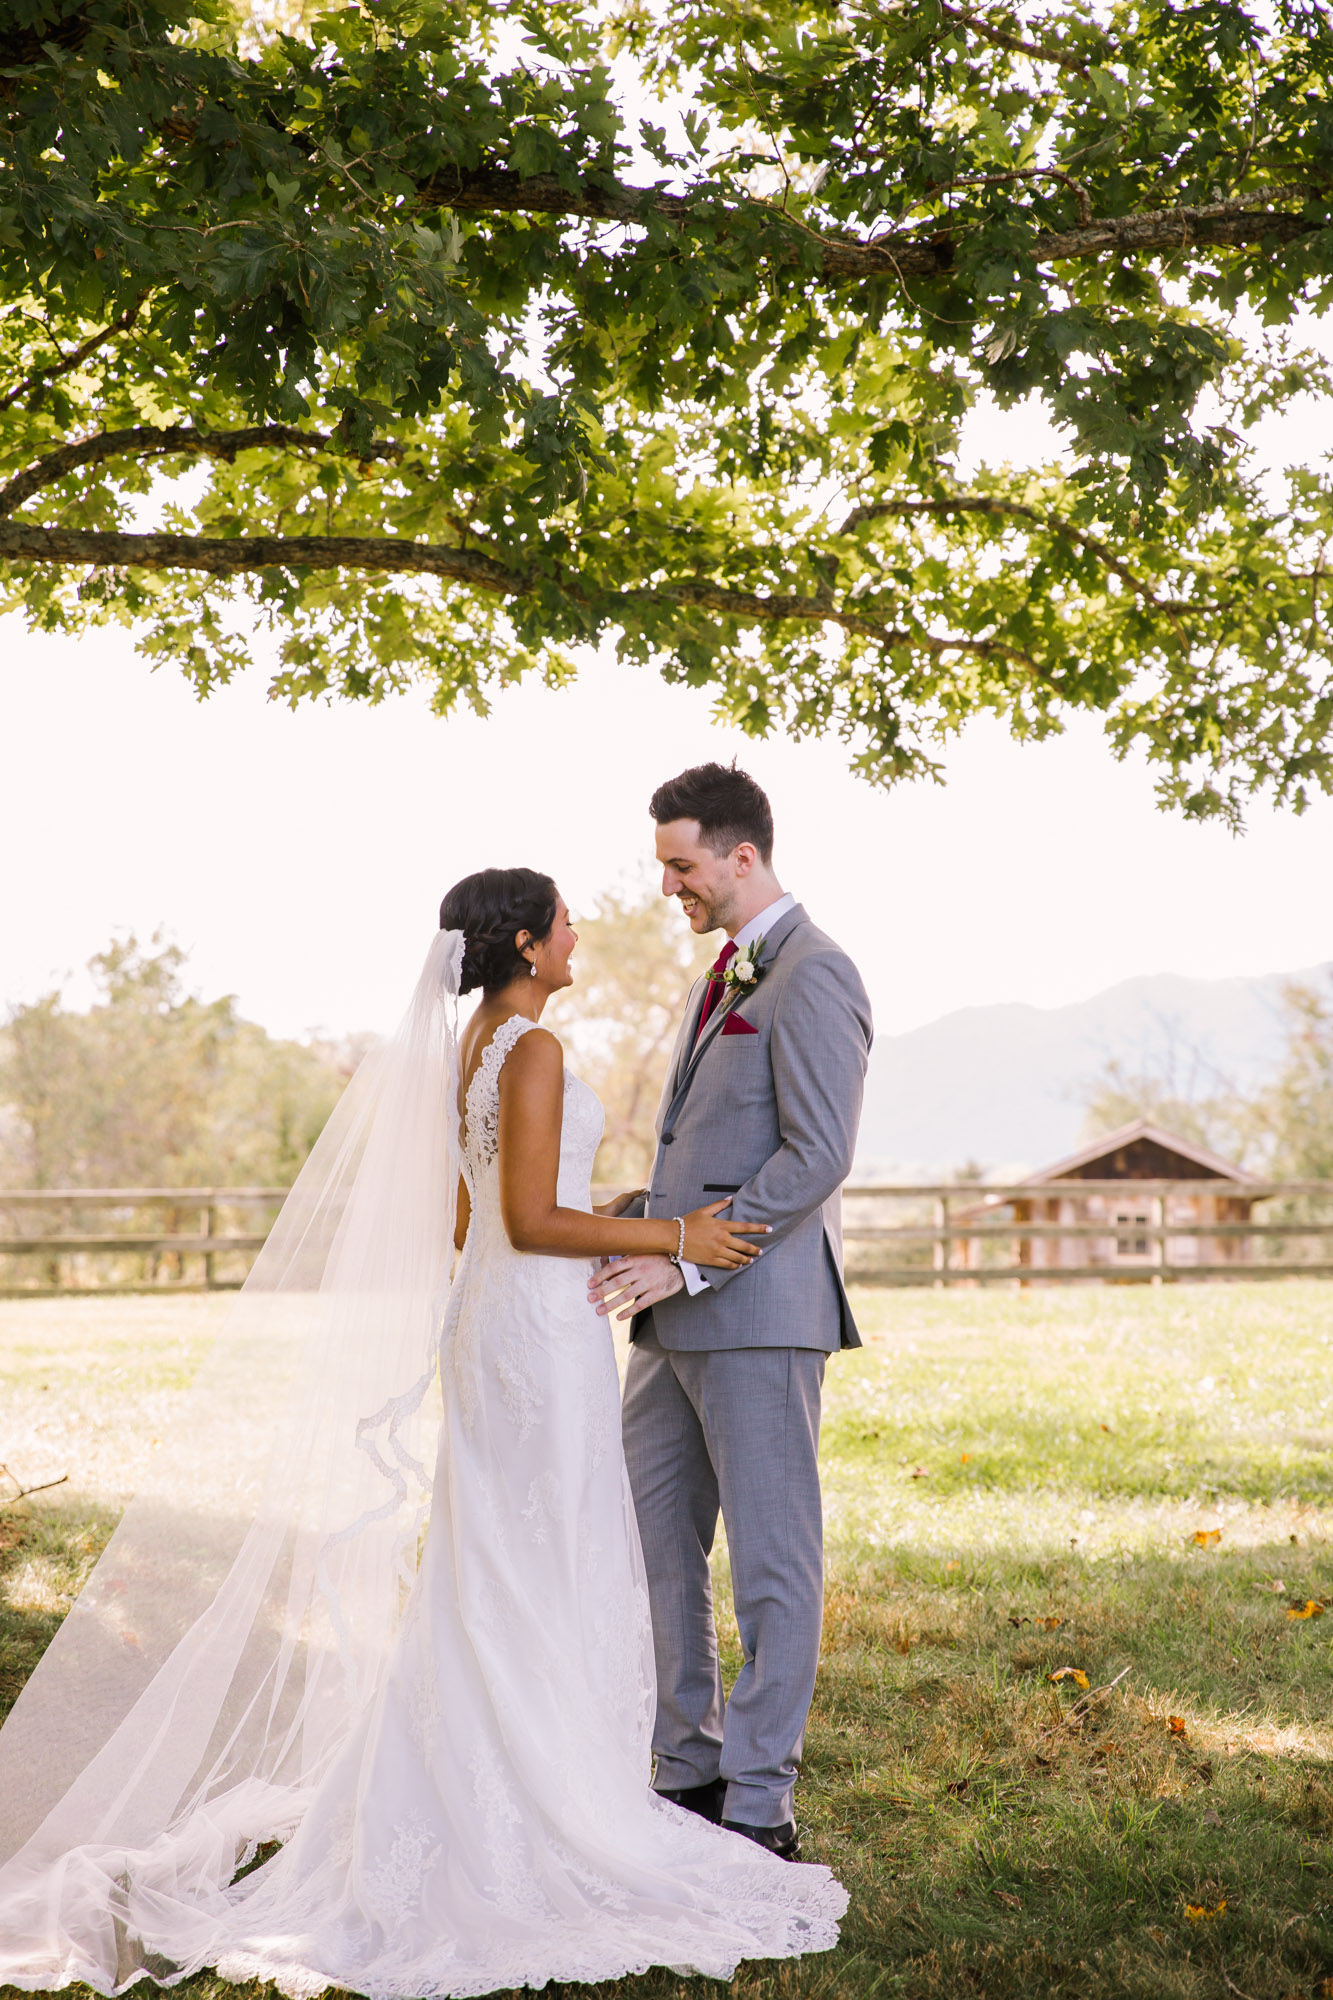 Waynesville NC Wedding Photography | Bride and Groom First Look